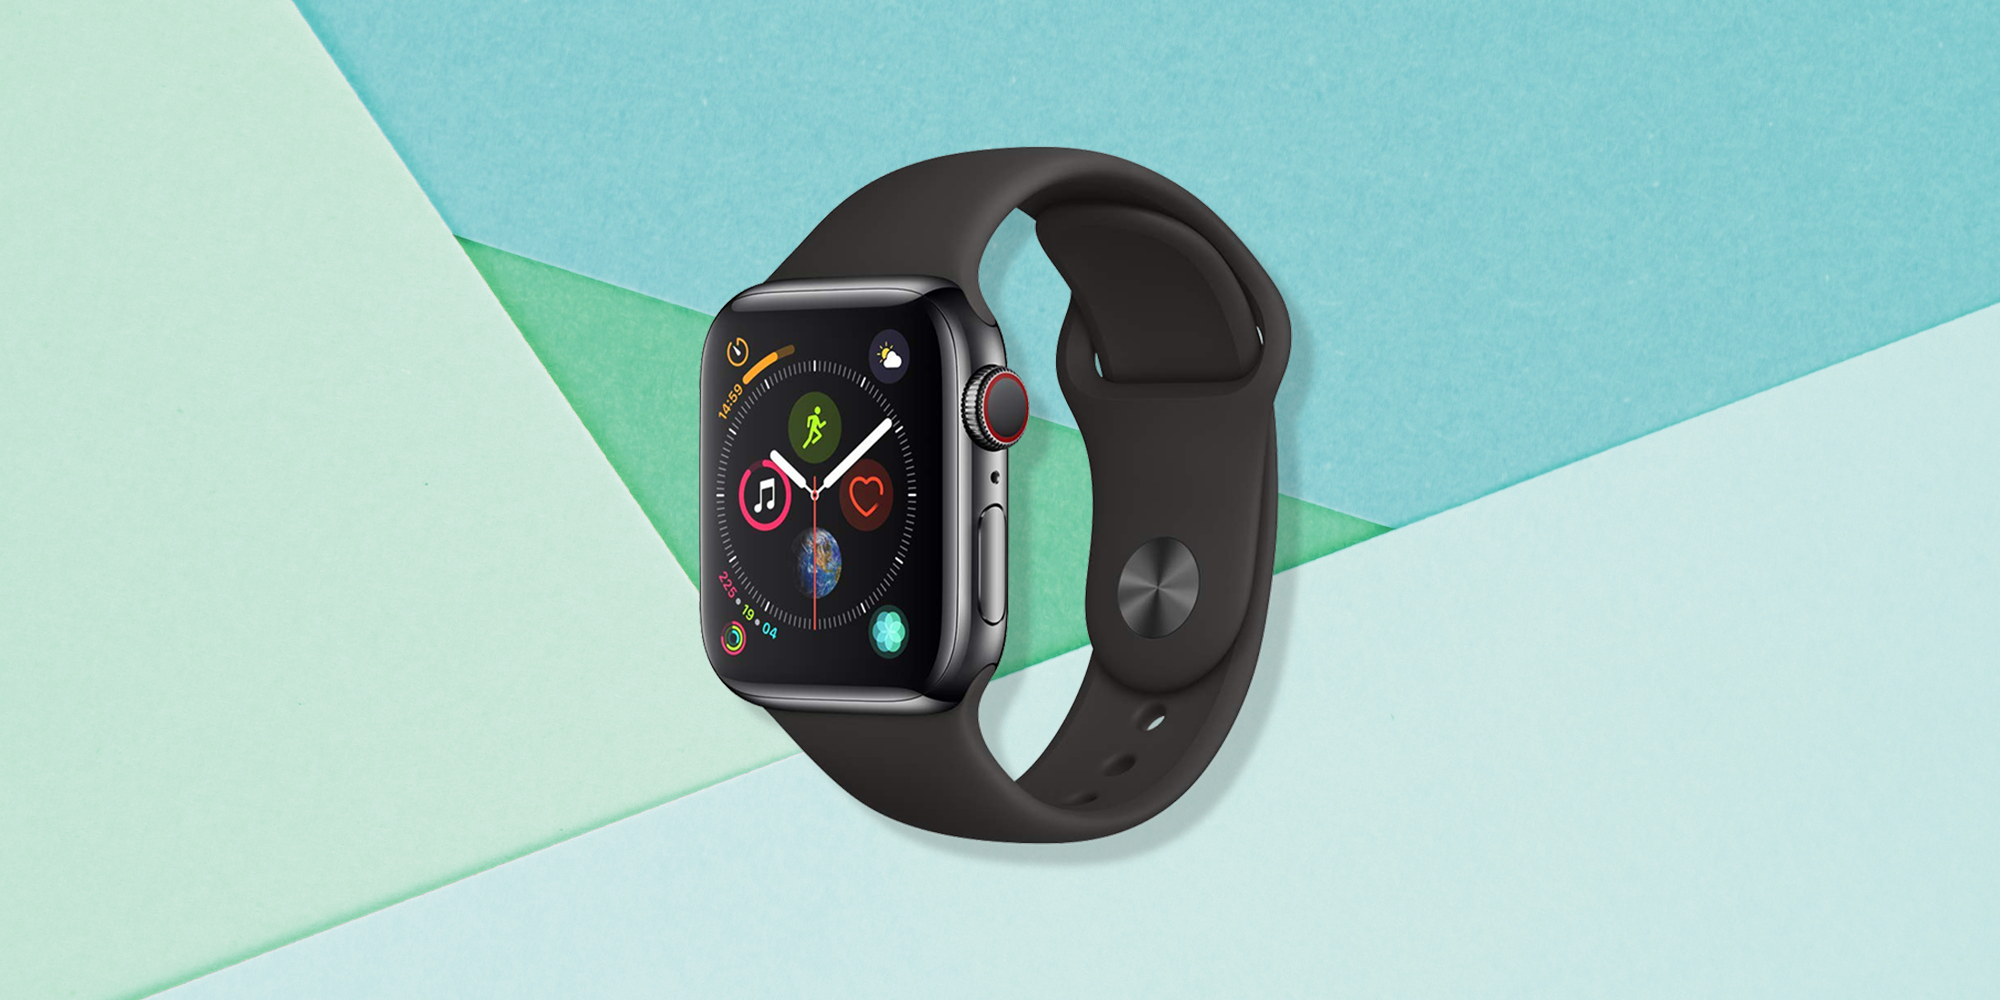 Apple Watch Series 4 Is On Sale For $80 Off On Amazon Right Now